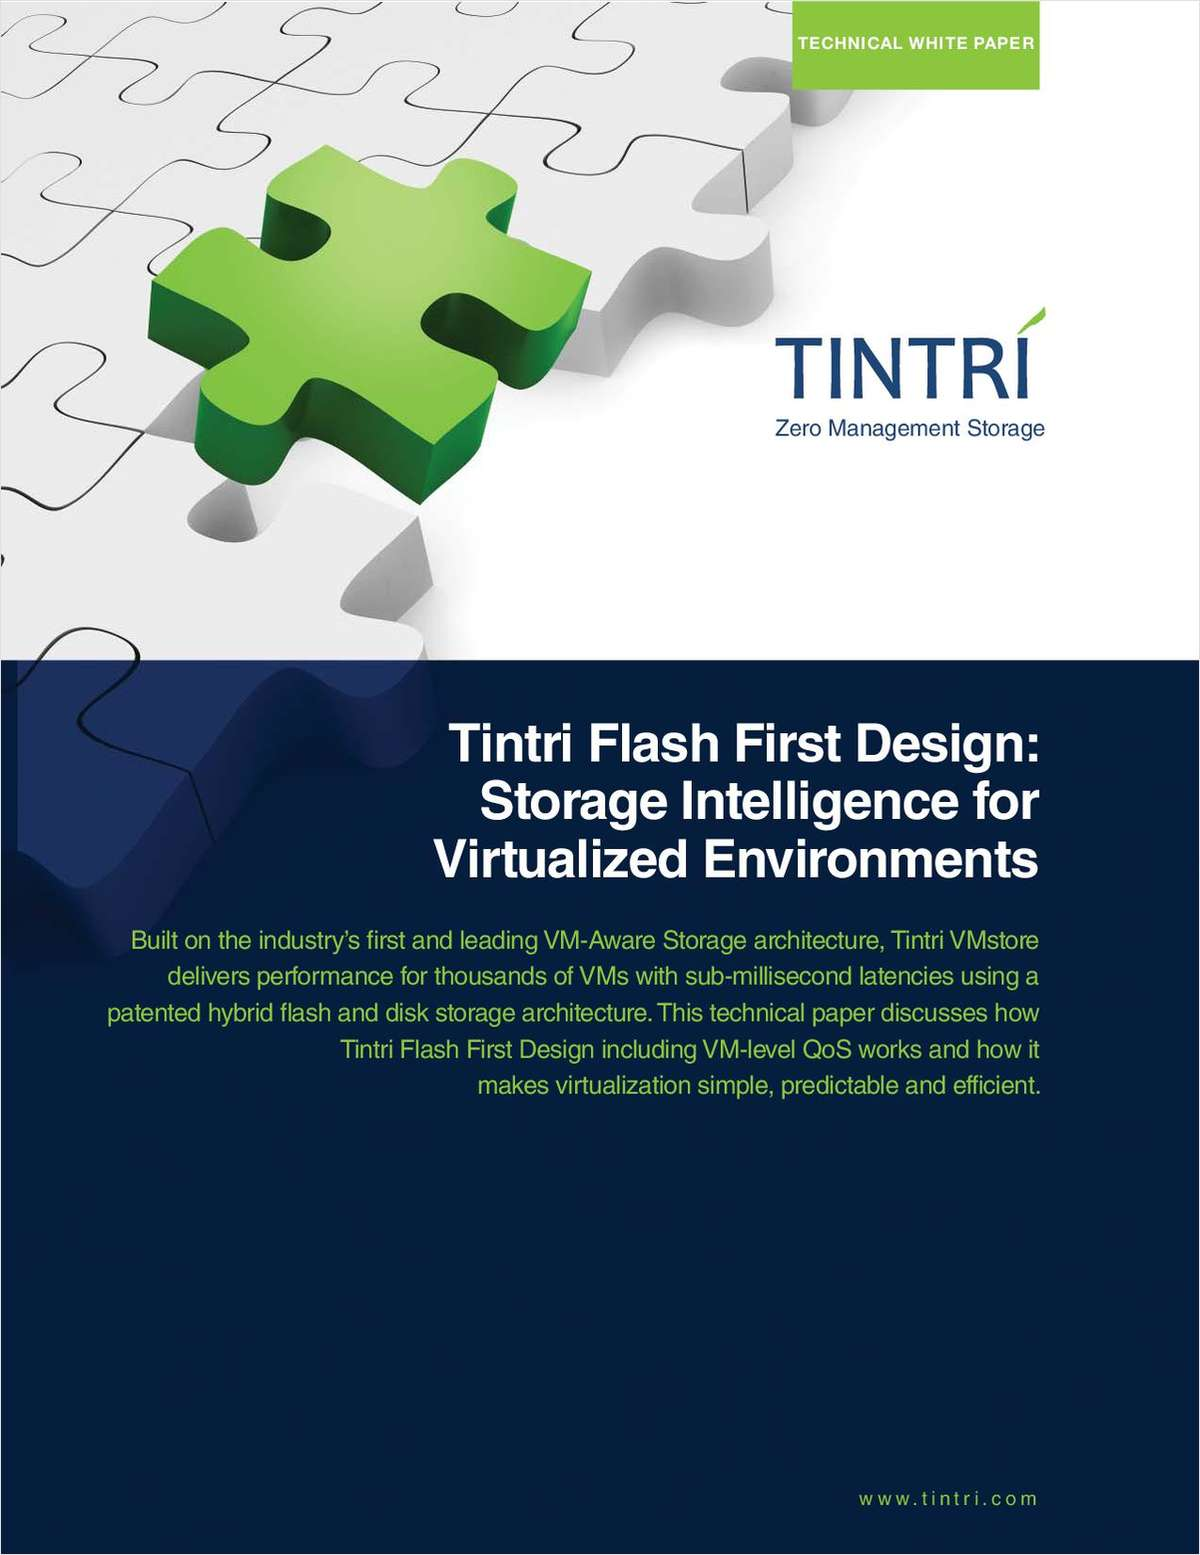 Tintri Flash First Design: Storage Intelligence for Virtualized Environments